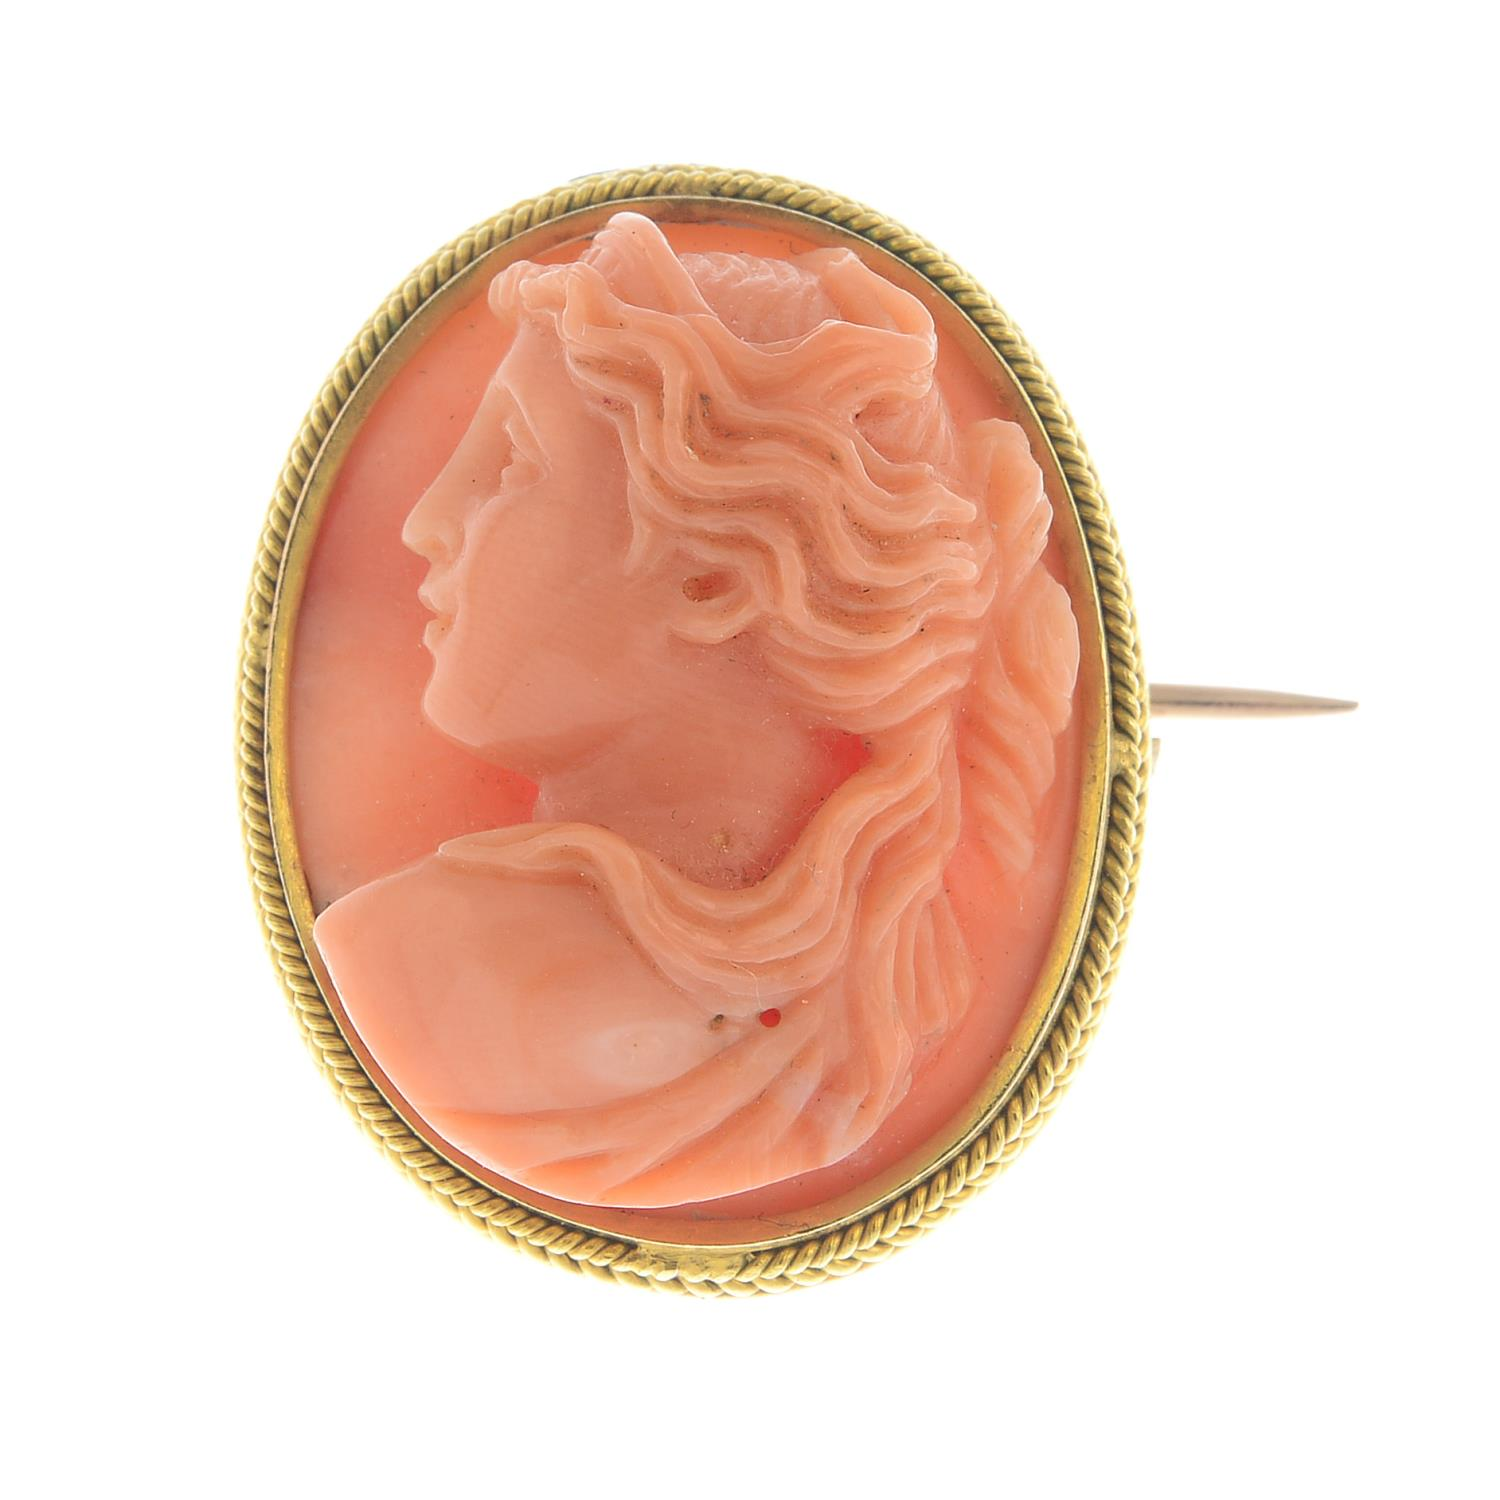 Lot 38 - A coral cameo brooch.Estimated dimensions of coral 22 by 17.3 by 8.4mms.Length 2.5cms.